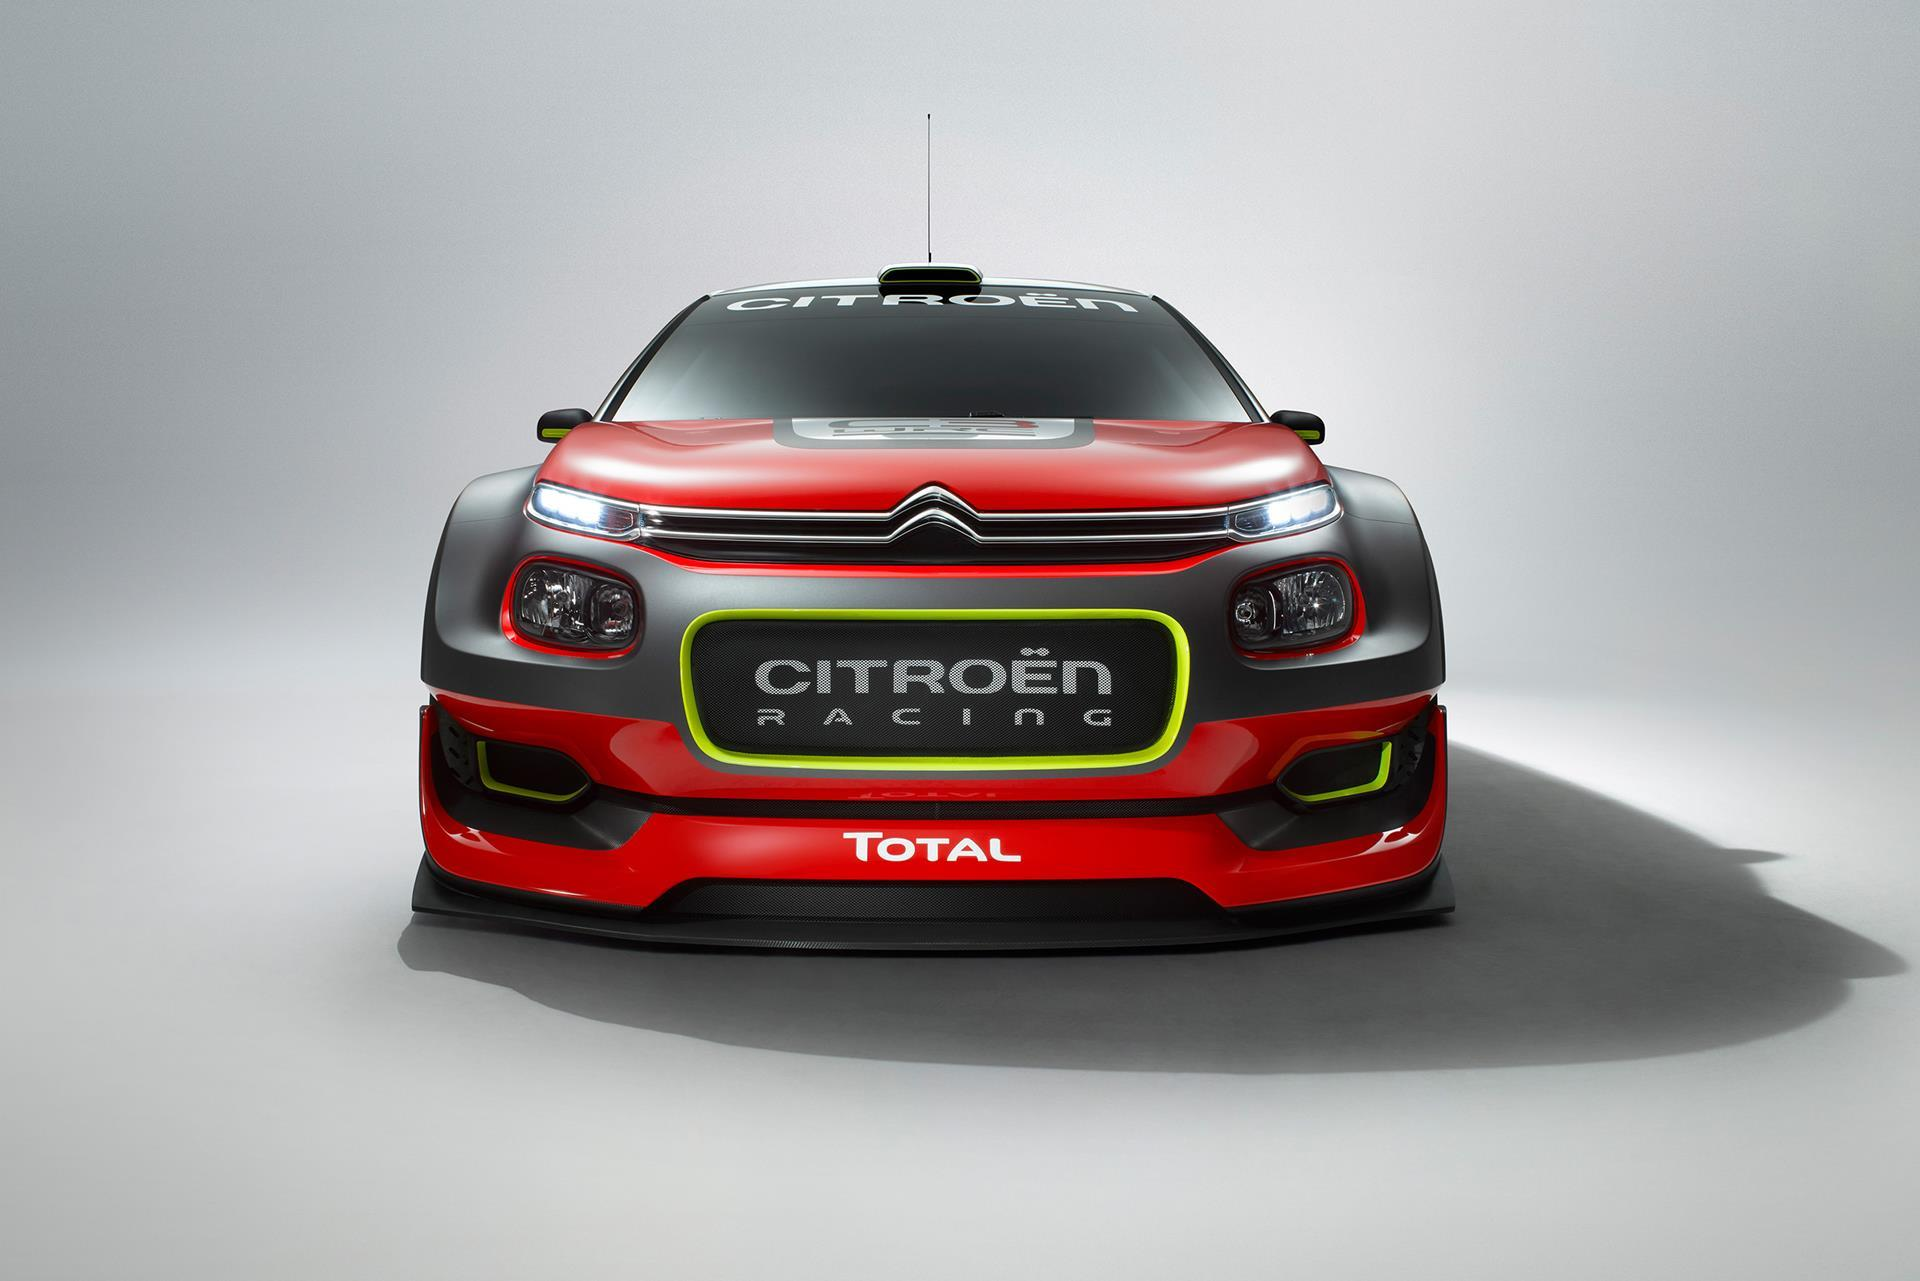 2016 citroen c3 wrc concept news and information research and history. Black Bedroom Furniture Sets. Home Design Ideas